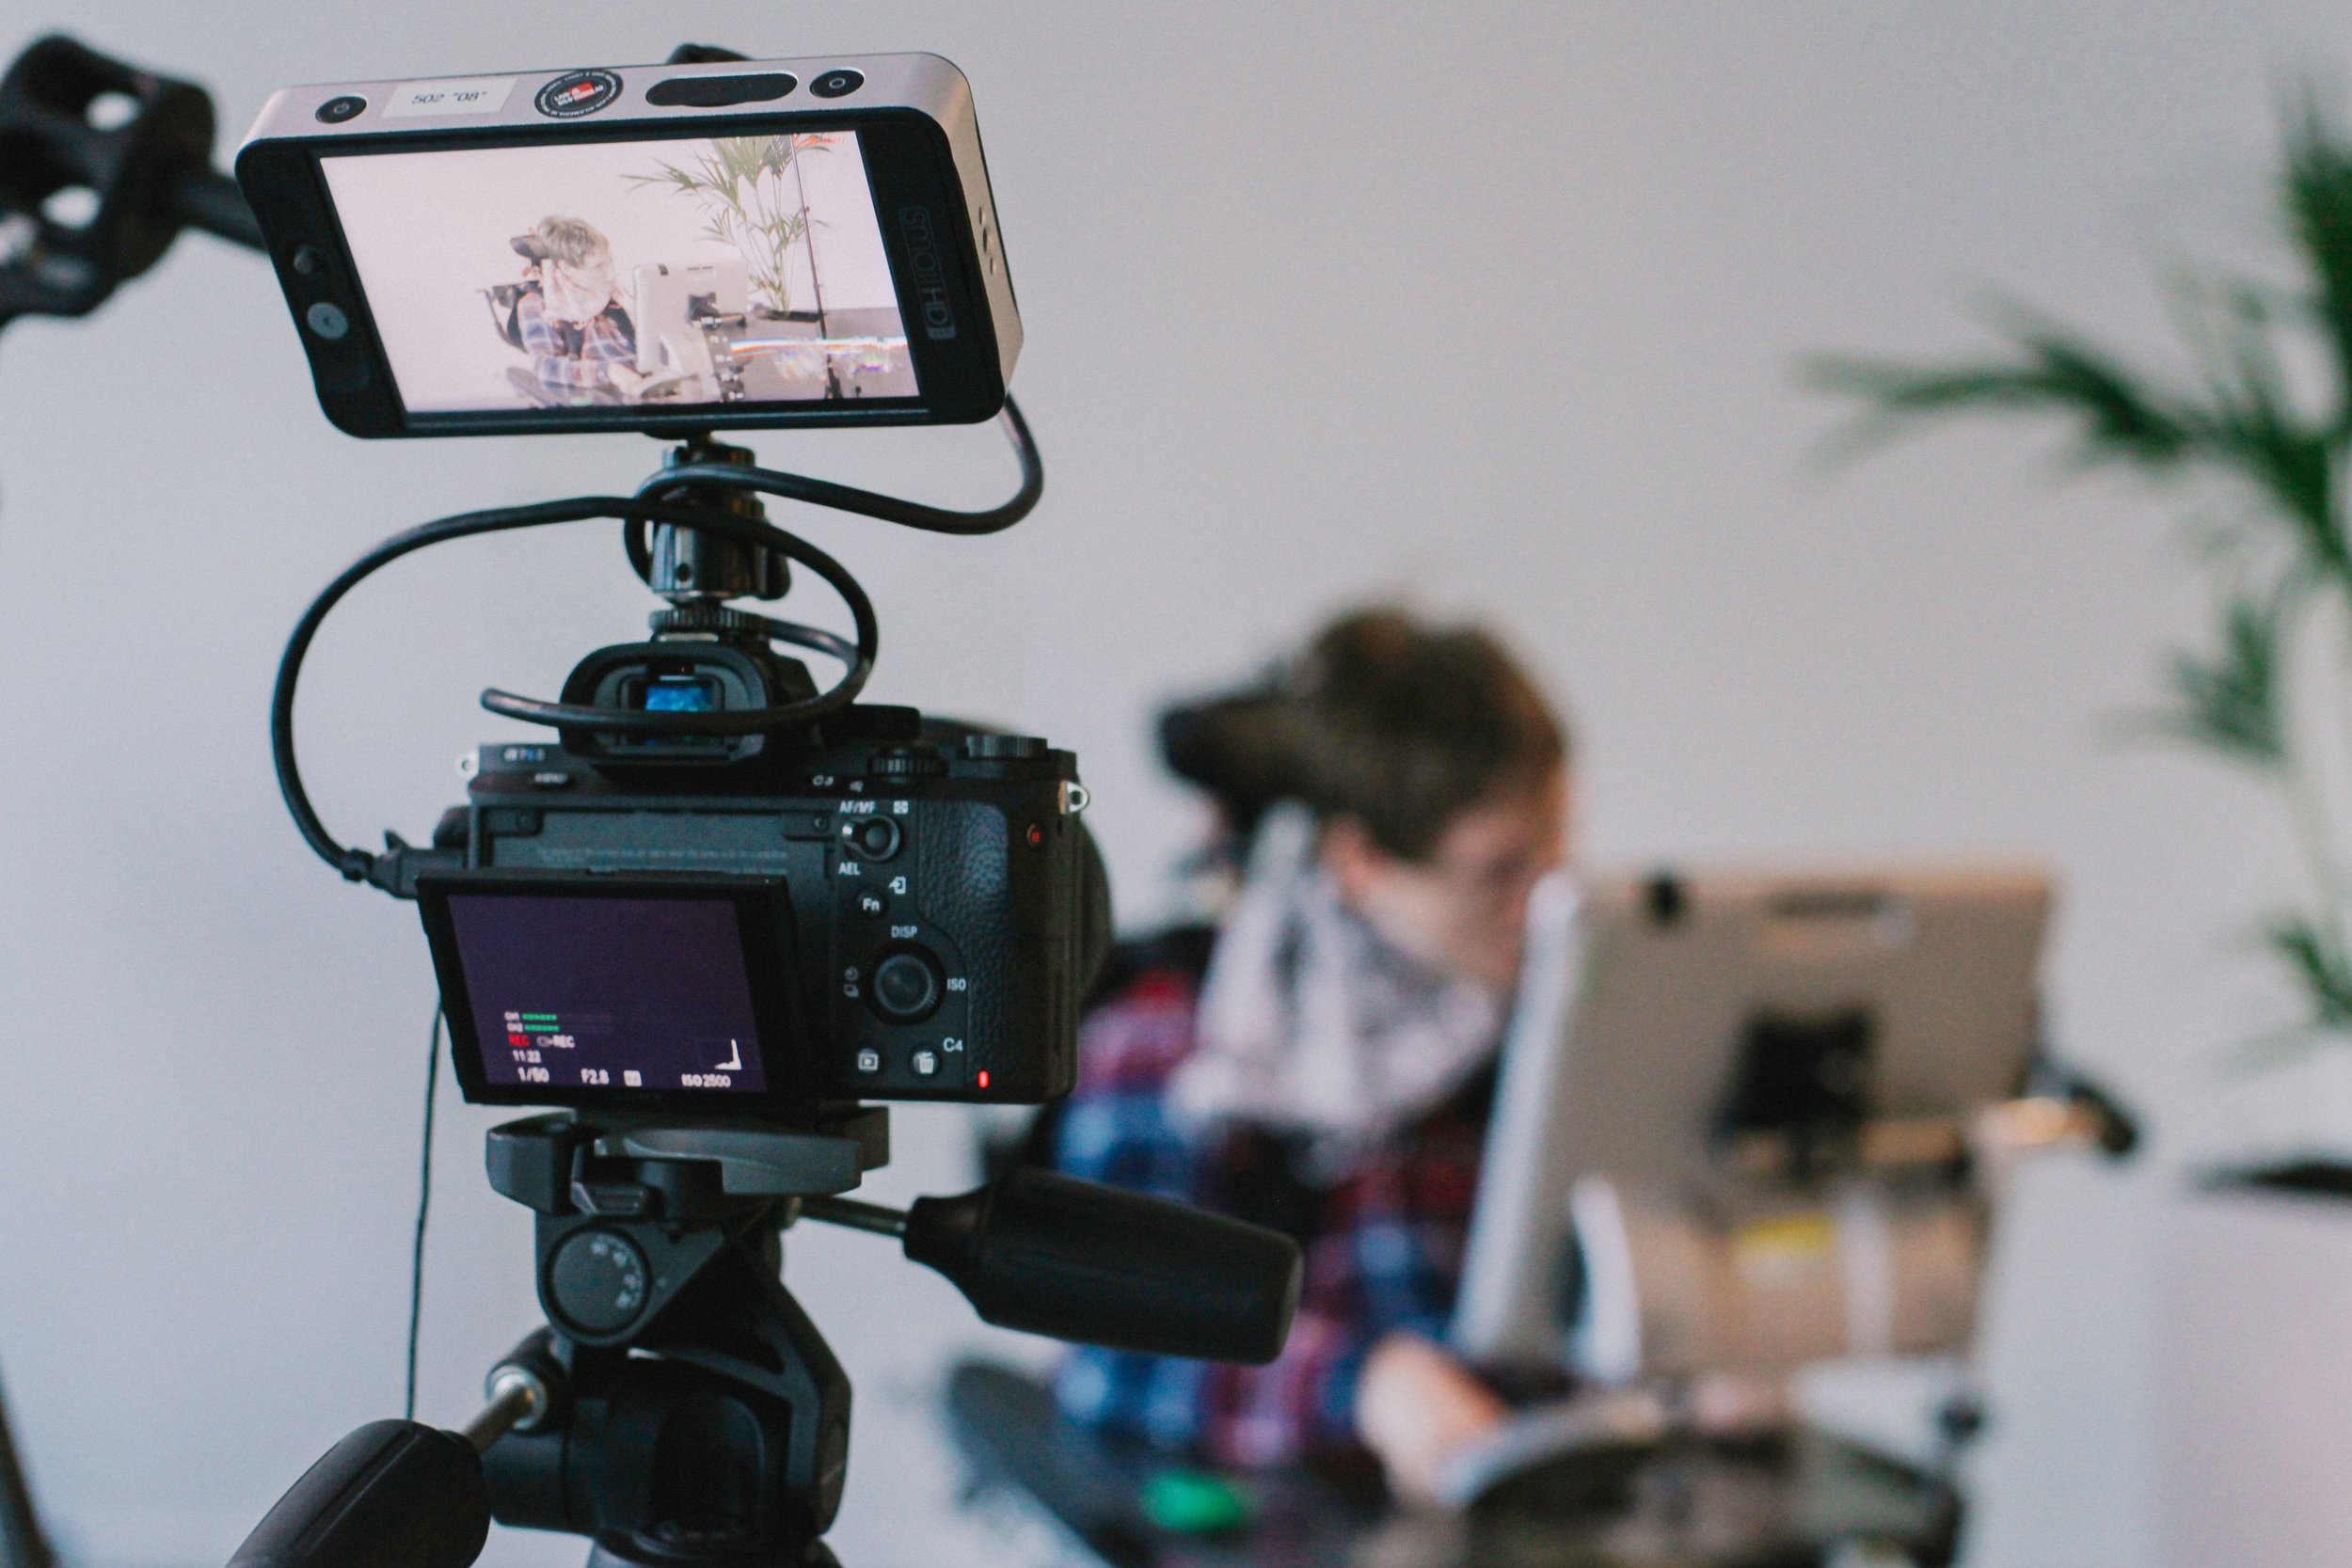 You will need some equipment to make videos. But don't let the idea of perfection stop you from getting started. People can recognize quality information even if the execution isn't glossy. Image by  Vanilla Bear Films  on  Unsplash .